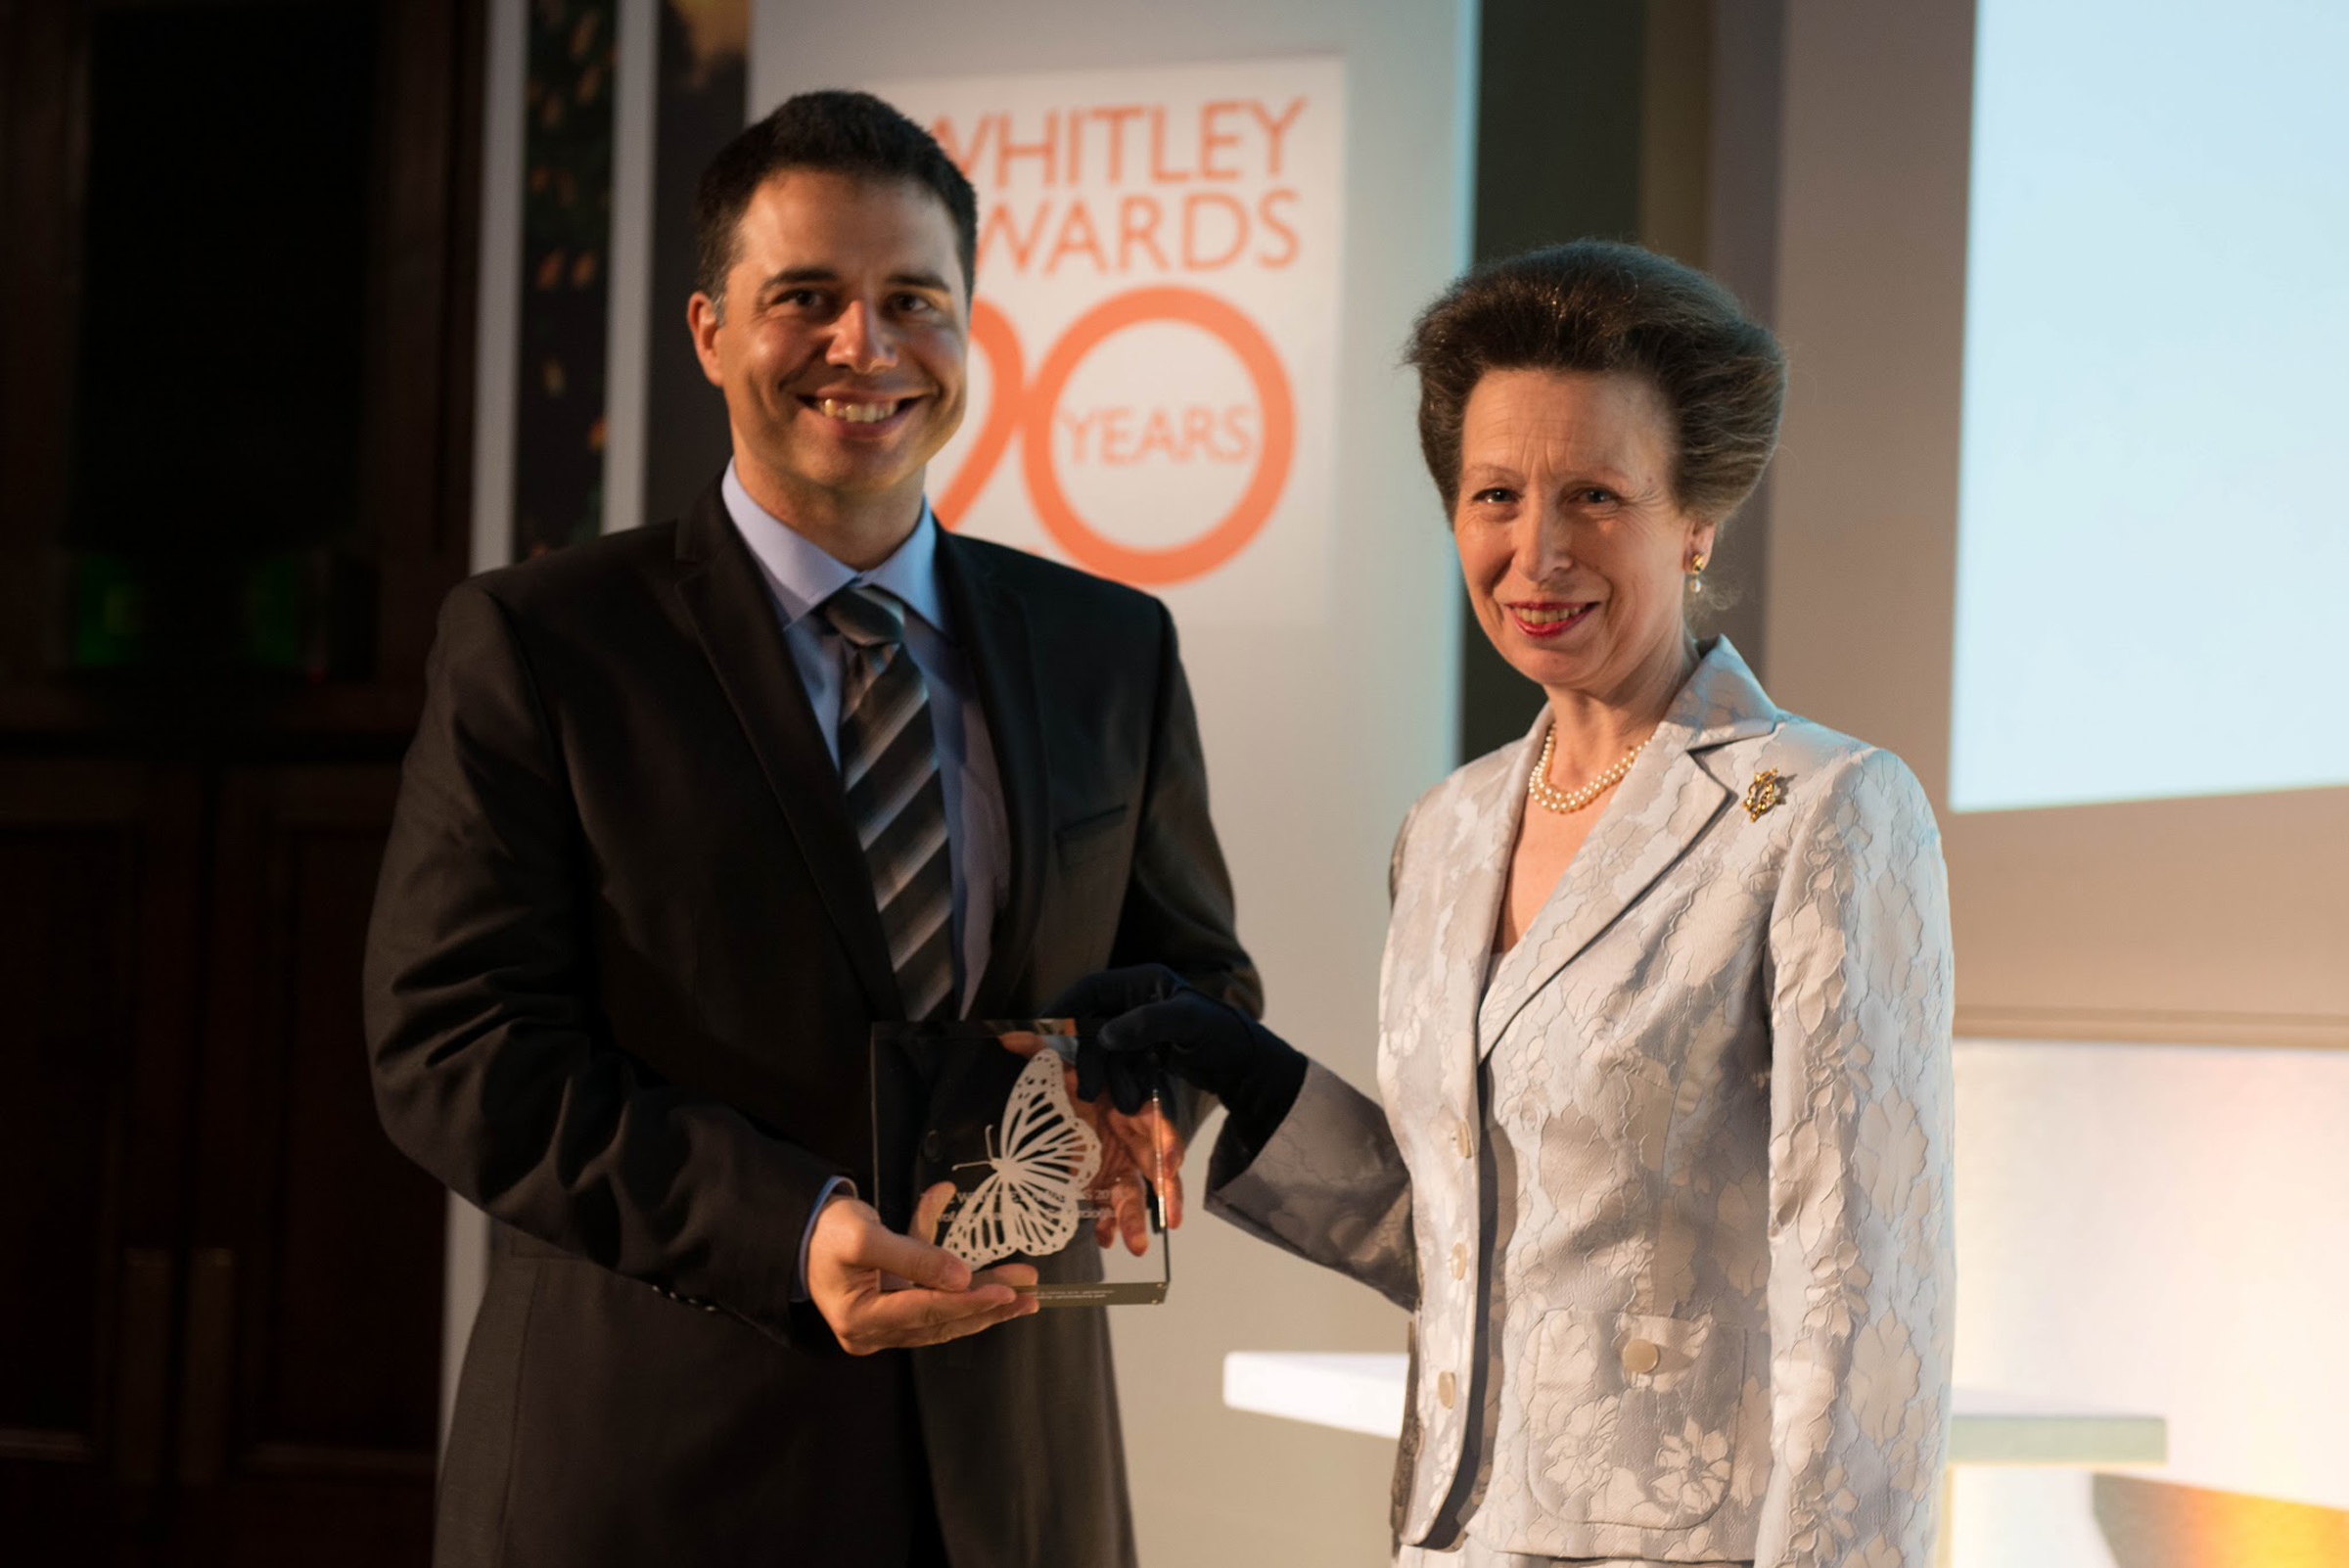 University of Utah biologist Çağan Şekercioğlu accepts the prestigious 20th Anniversary Whitley Gold Award for nature conservation from the United Kingdom's Princess Anne on Thursday, May 2, 2013 during a ceremony at the Royal Geographical Society in London.